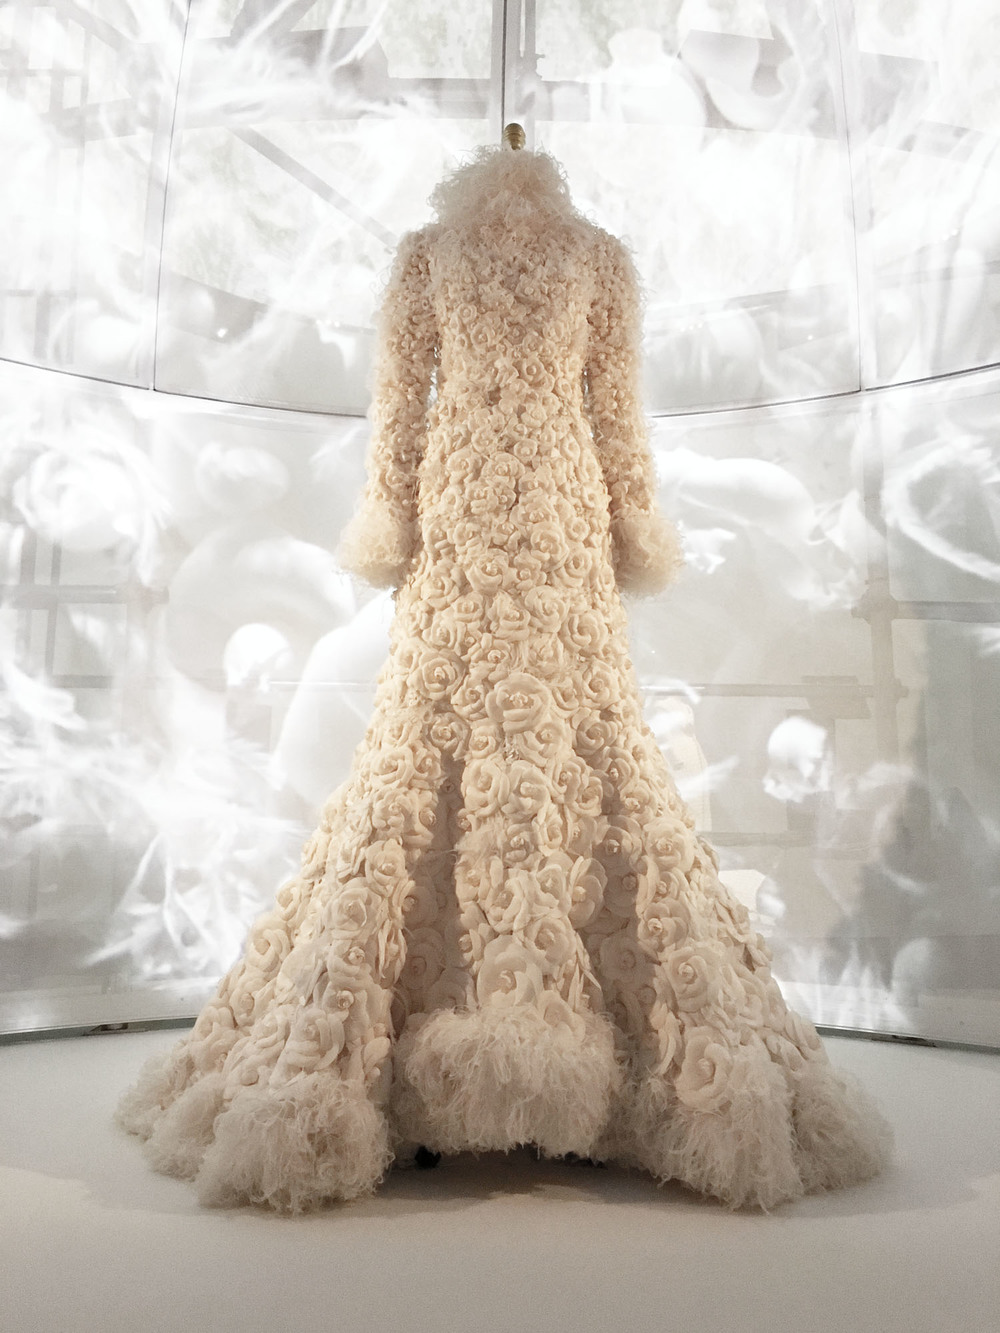 House of Chanel by Karl Lagerfeld